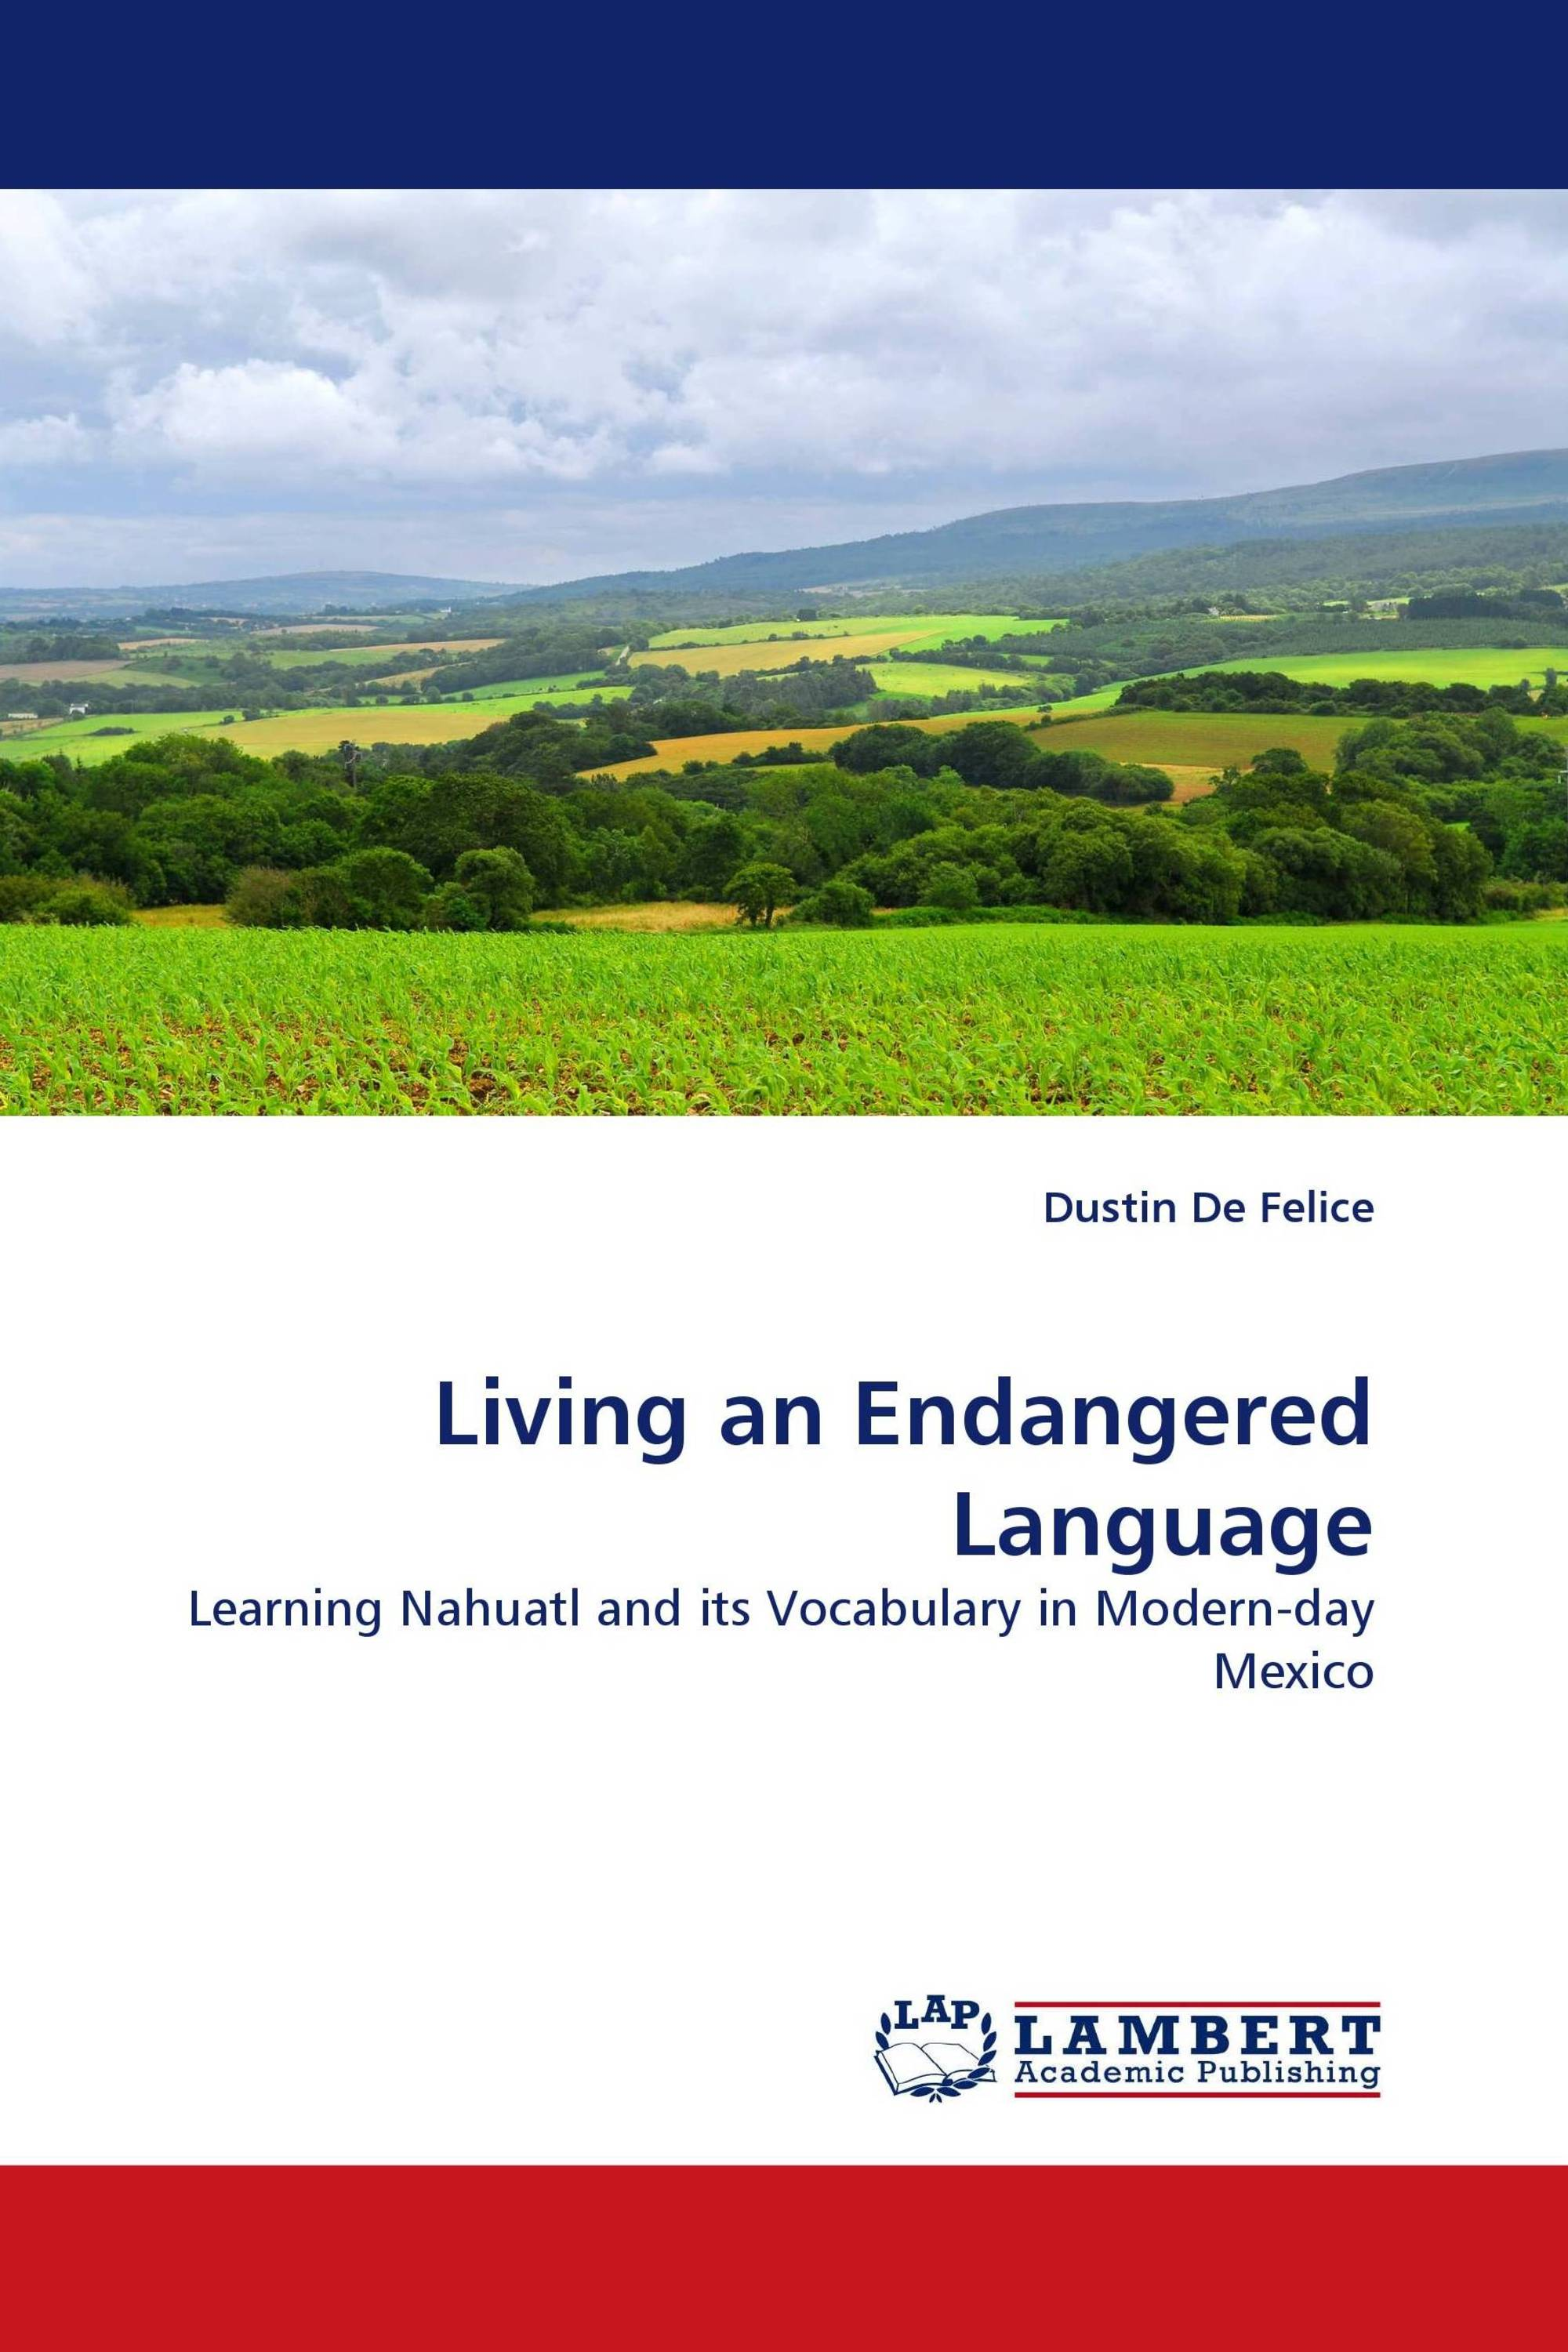 endangered language A language is endangered when its speakers cease to use it, use it in fewer and fewer domains, use fewer of its registers and speaking styles, and/or stop passing it.